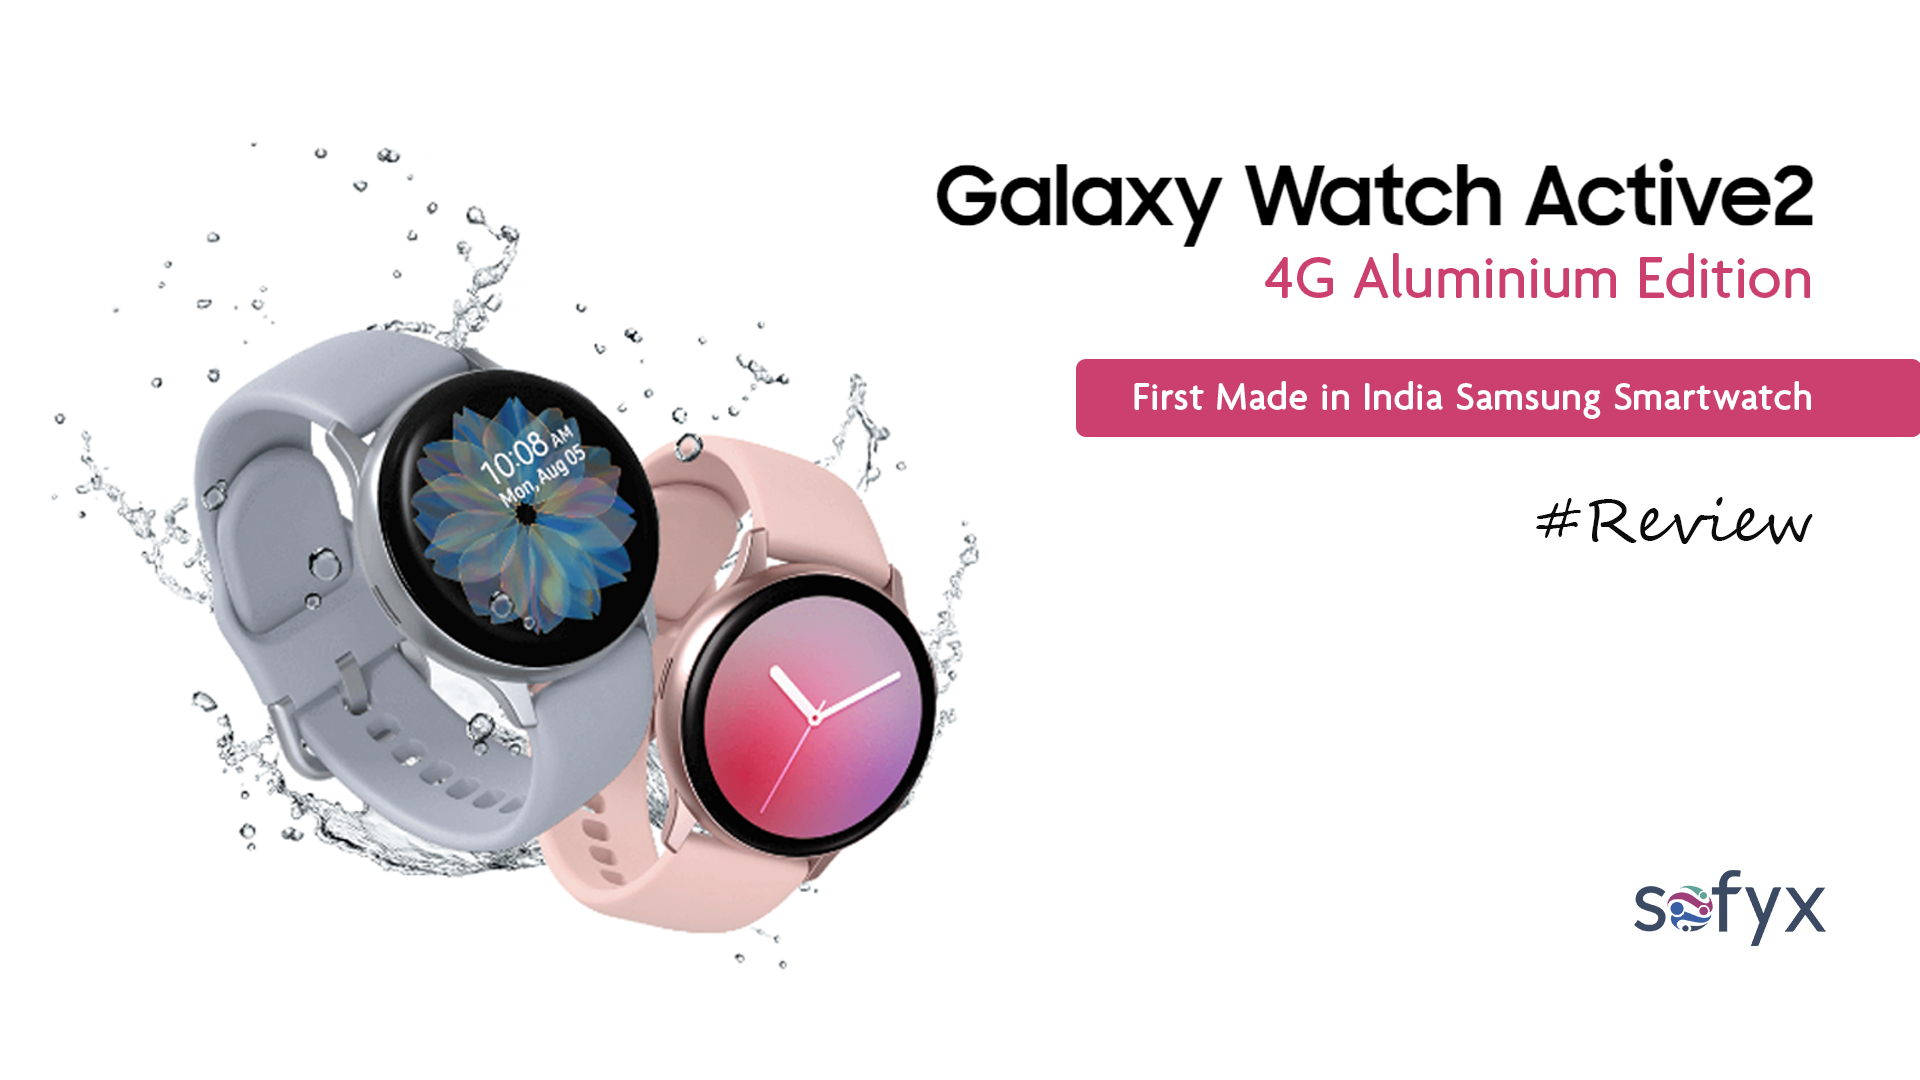 A review of Samsung's first Made in India watch – Galaxy Watch Active2 4G Aluminium